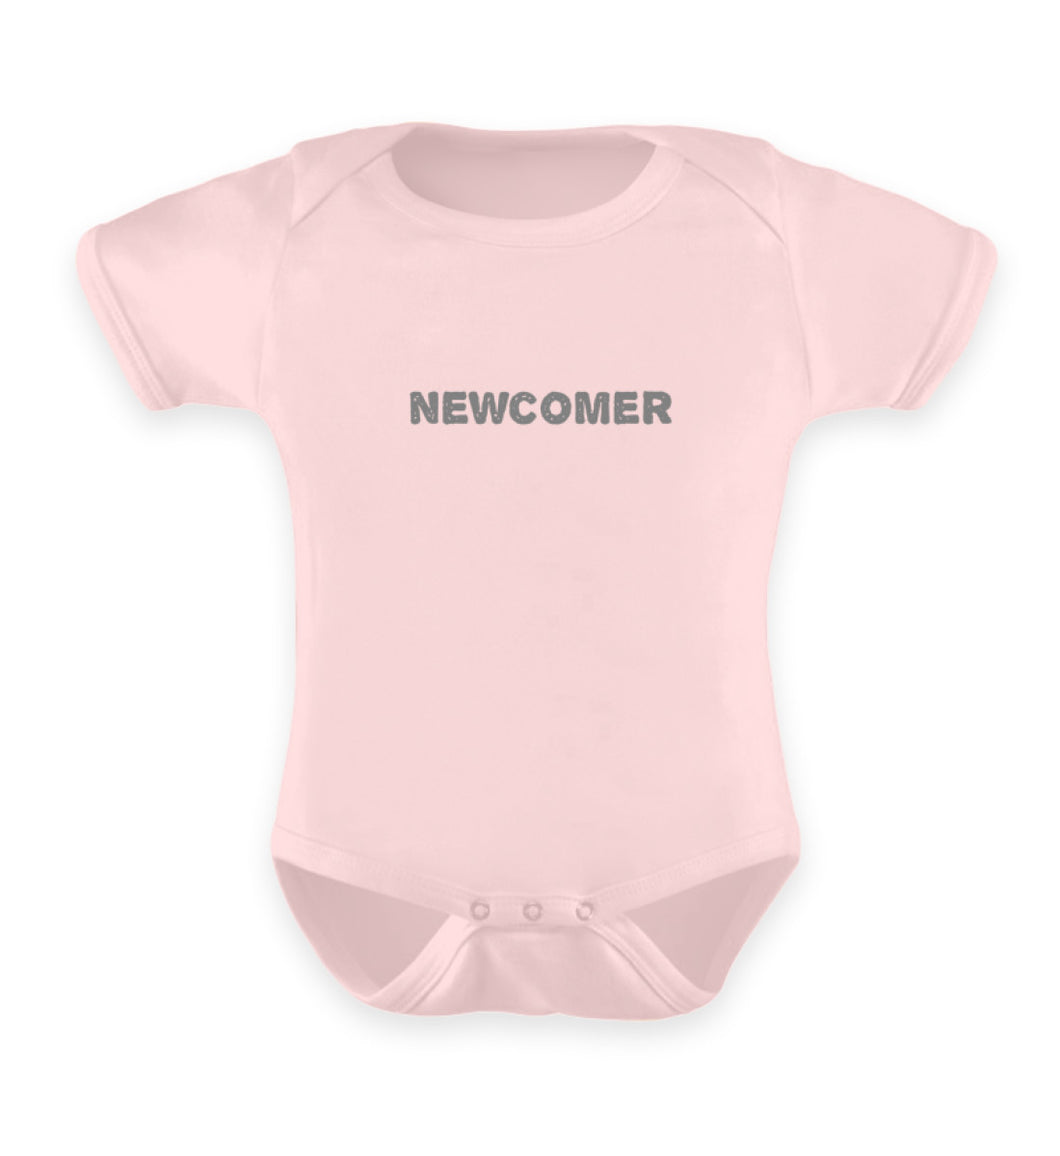 Puder Rosa Strampler Baby Body Newcomer